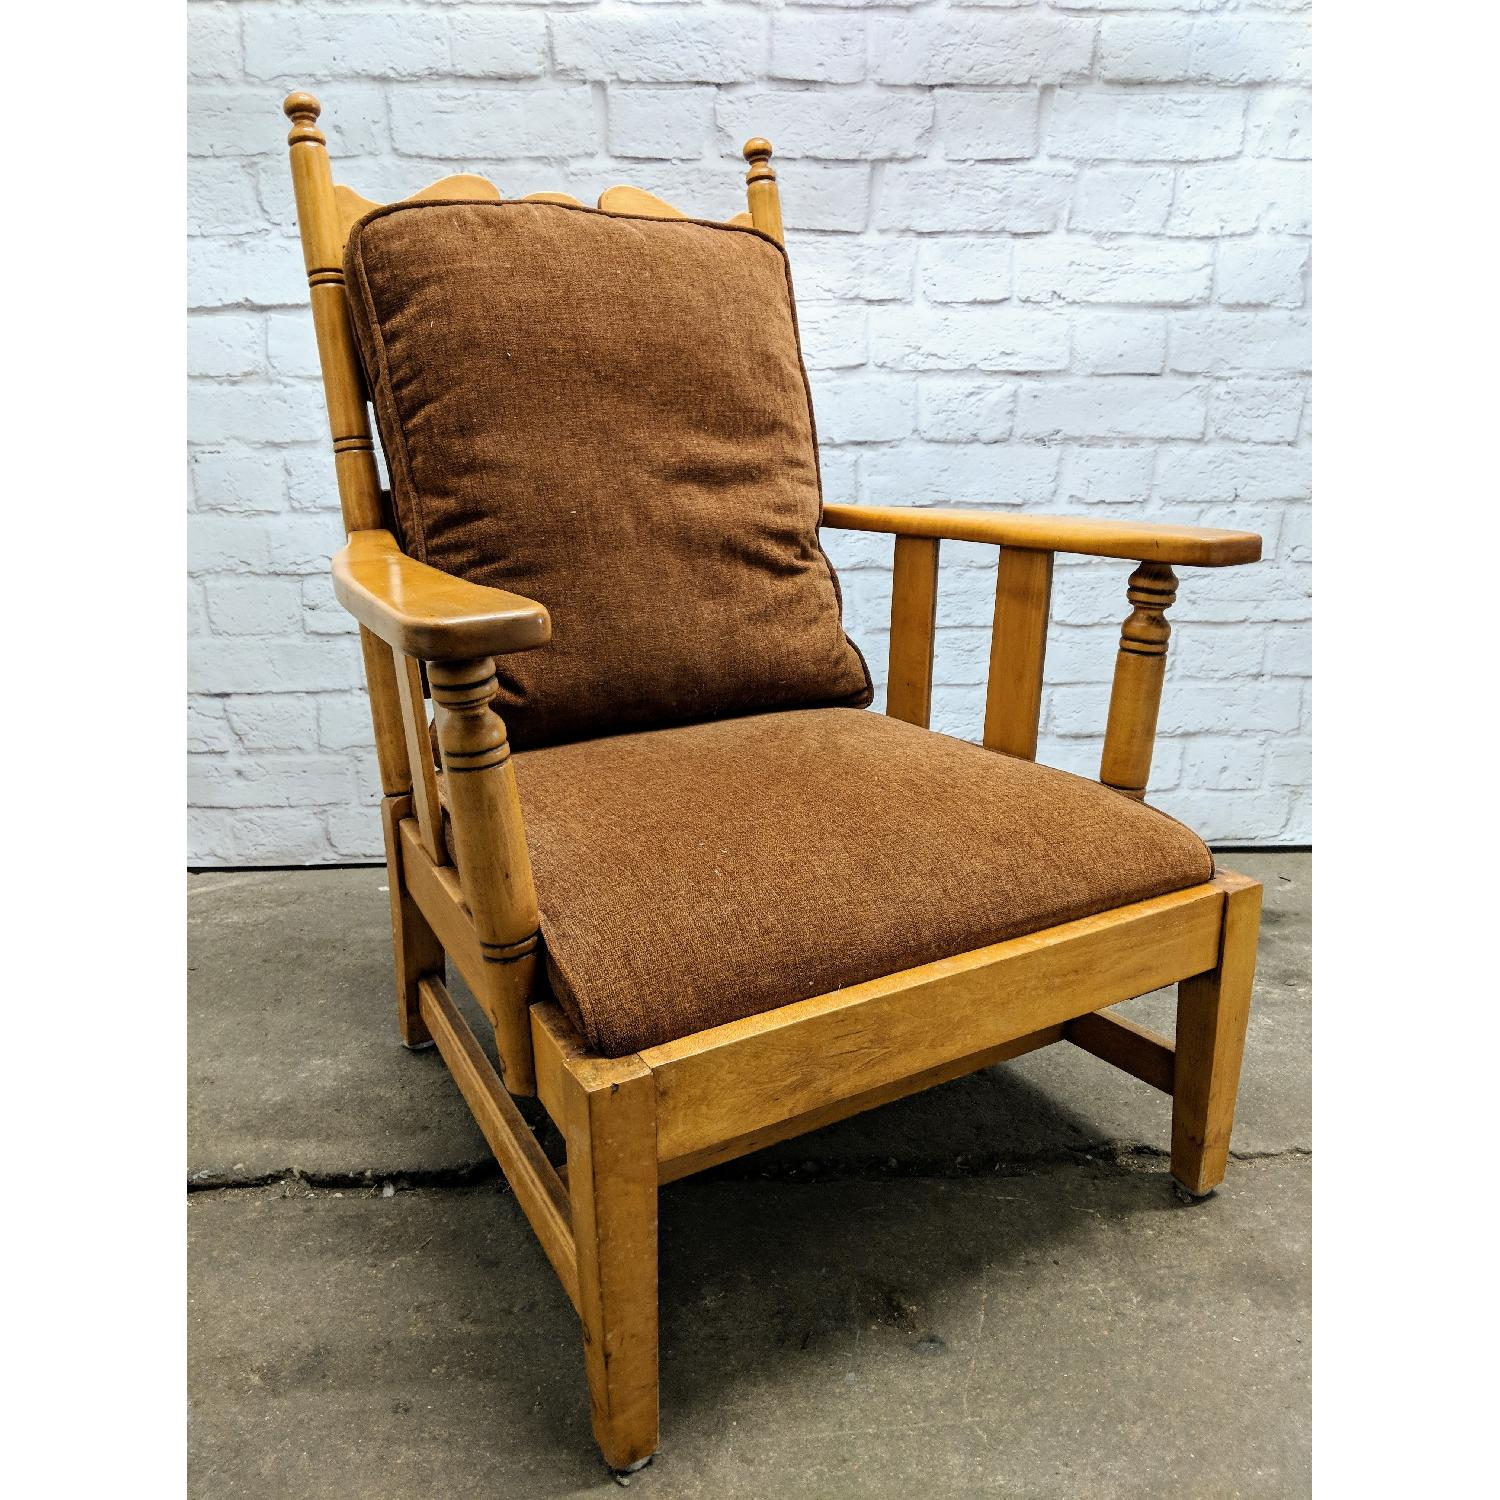 1970s Vintage L. & J. G. Stickley Cherry Valley Club Chair